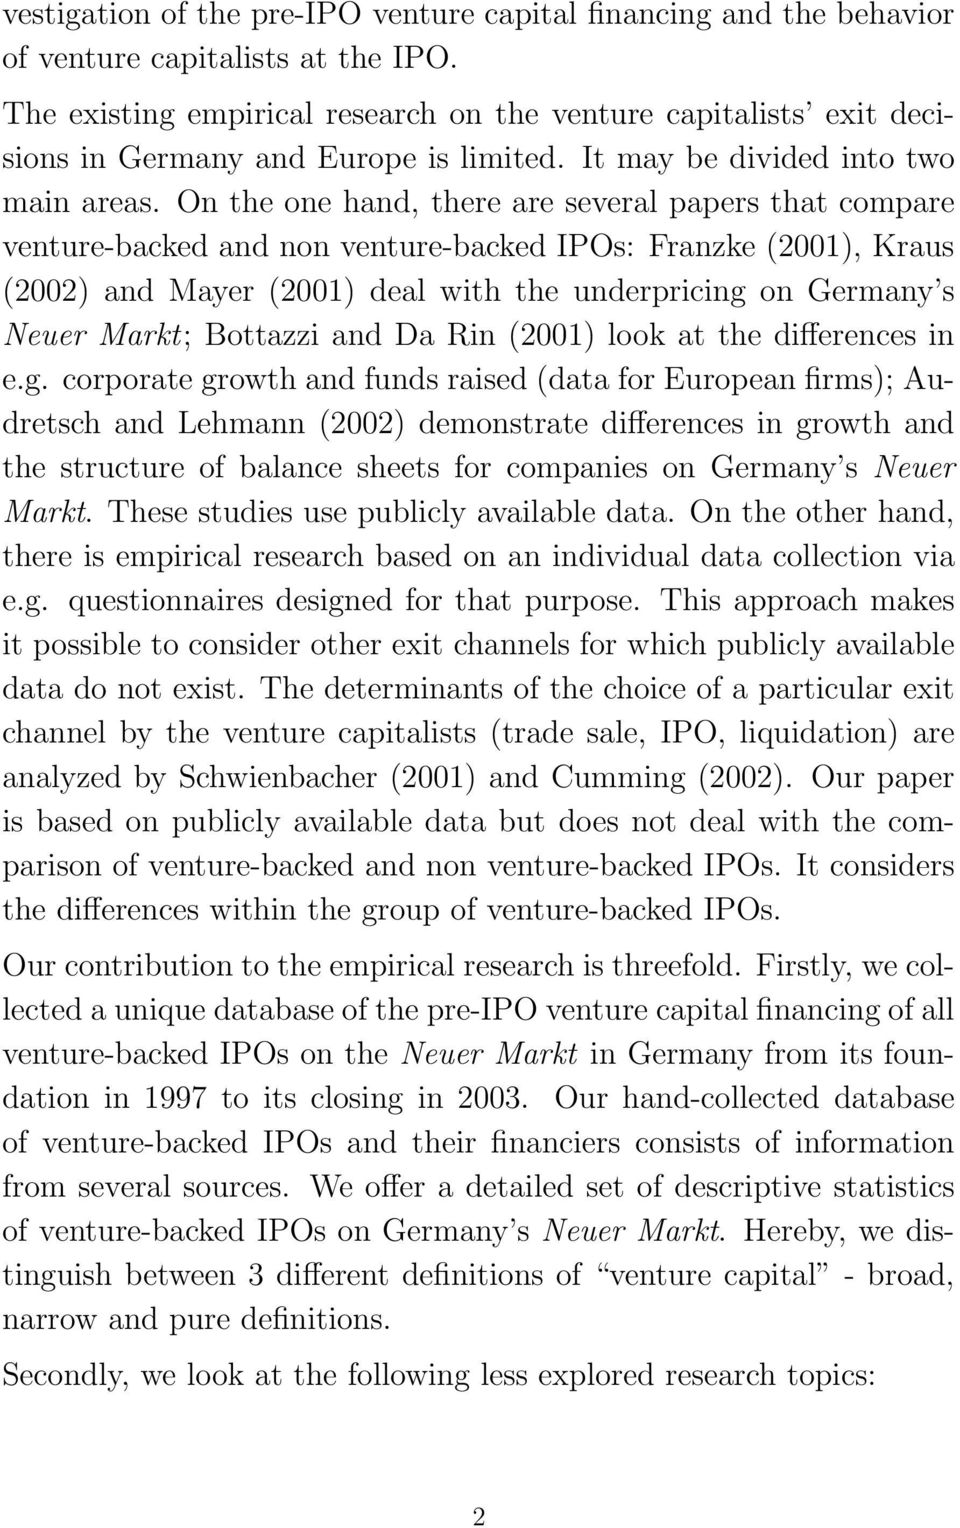 On the one hand, there are several papers that compare venture-backed and non venture-backed IPOs: Franzke (2001), Kraus (2002) and Mayer (2001) deal with the underpricing on Germany s Neuer Markt;